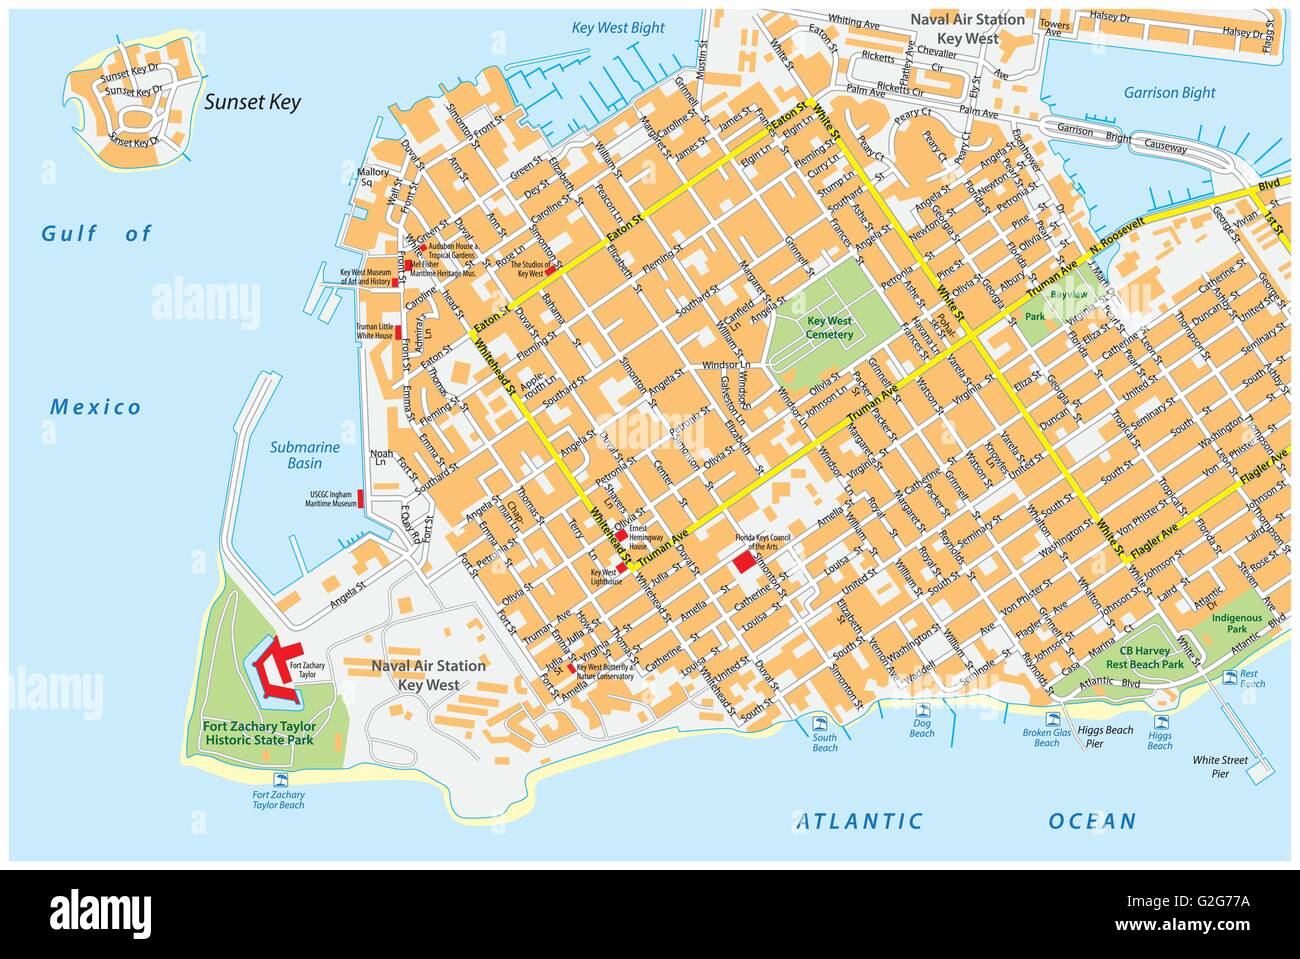 Key West Road Map With Road Names Florida United States